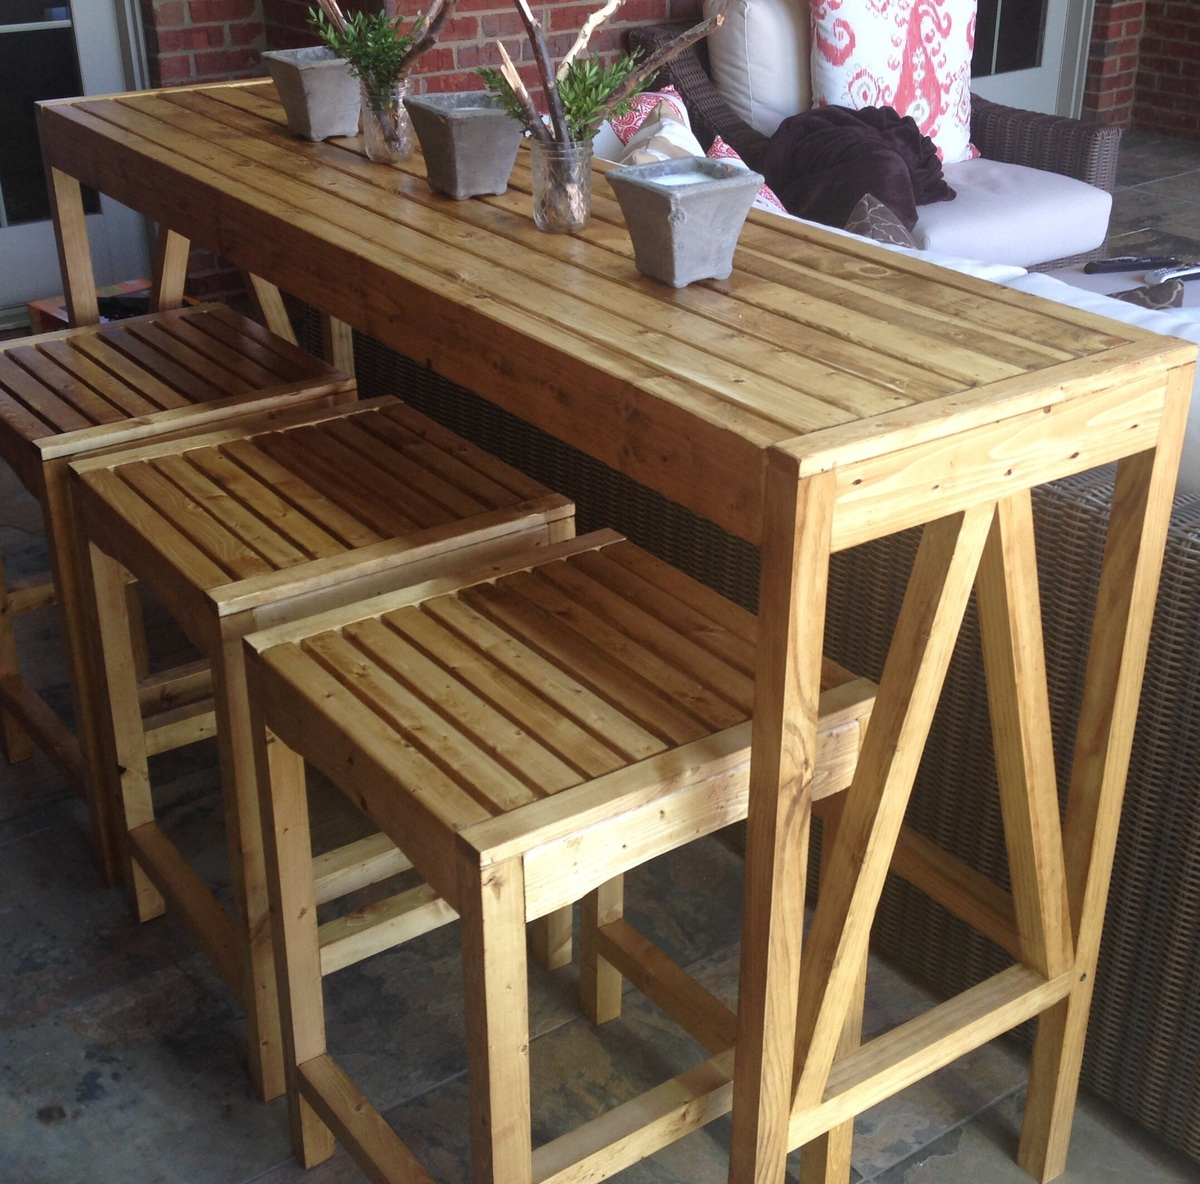 Ana White | Sutton Custom Outdoor Bar Stools - DIY Projects